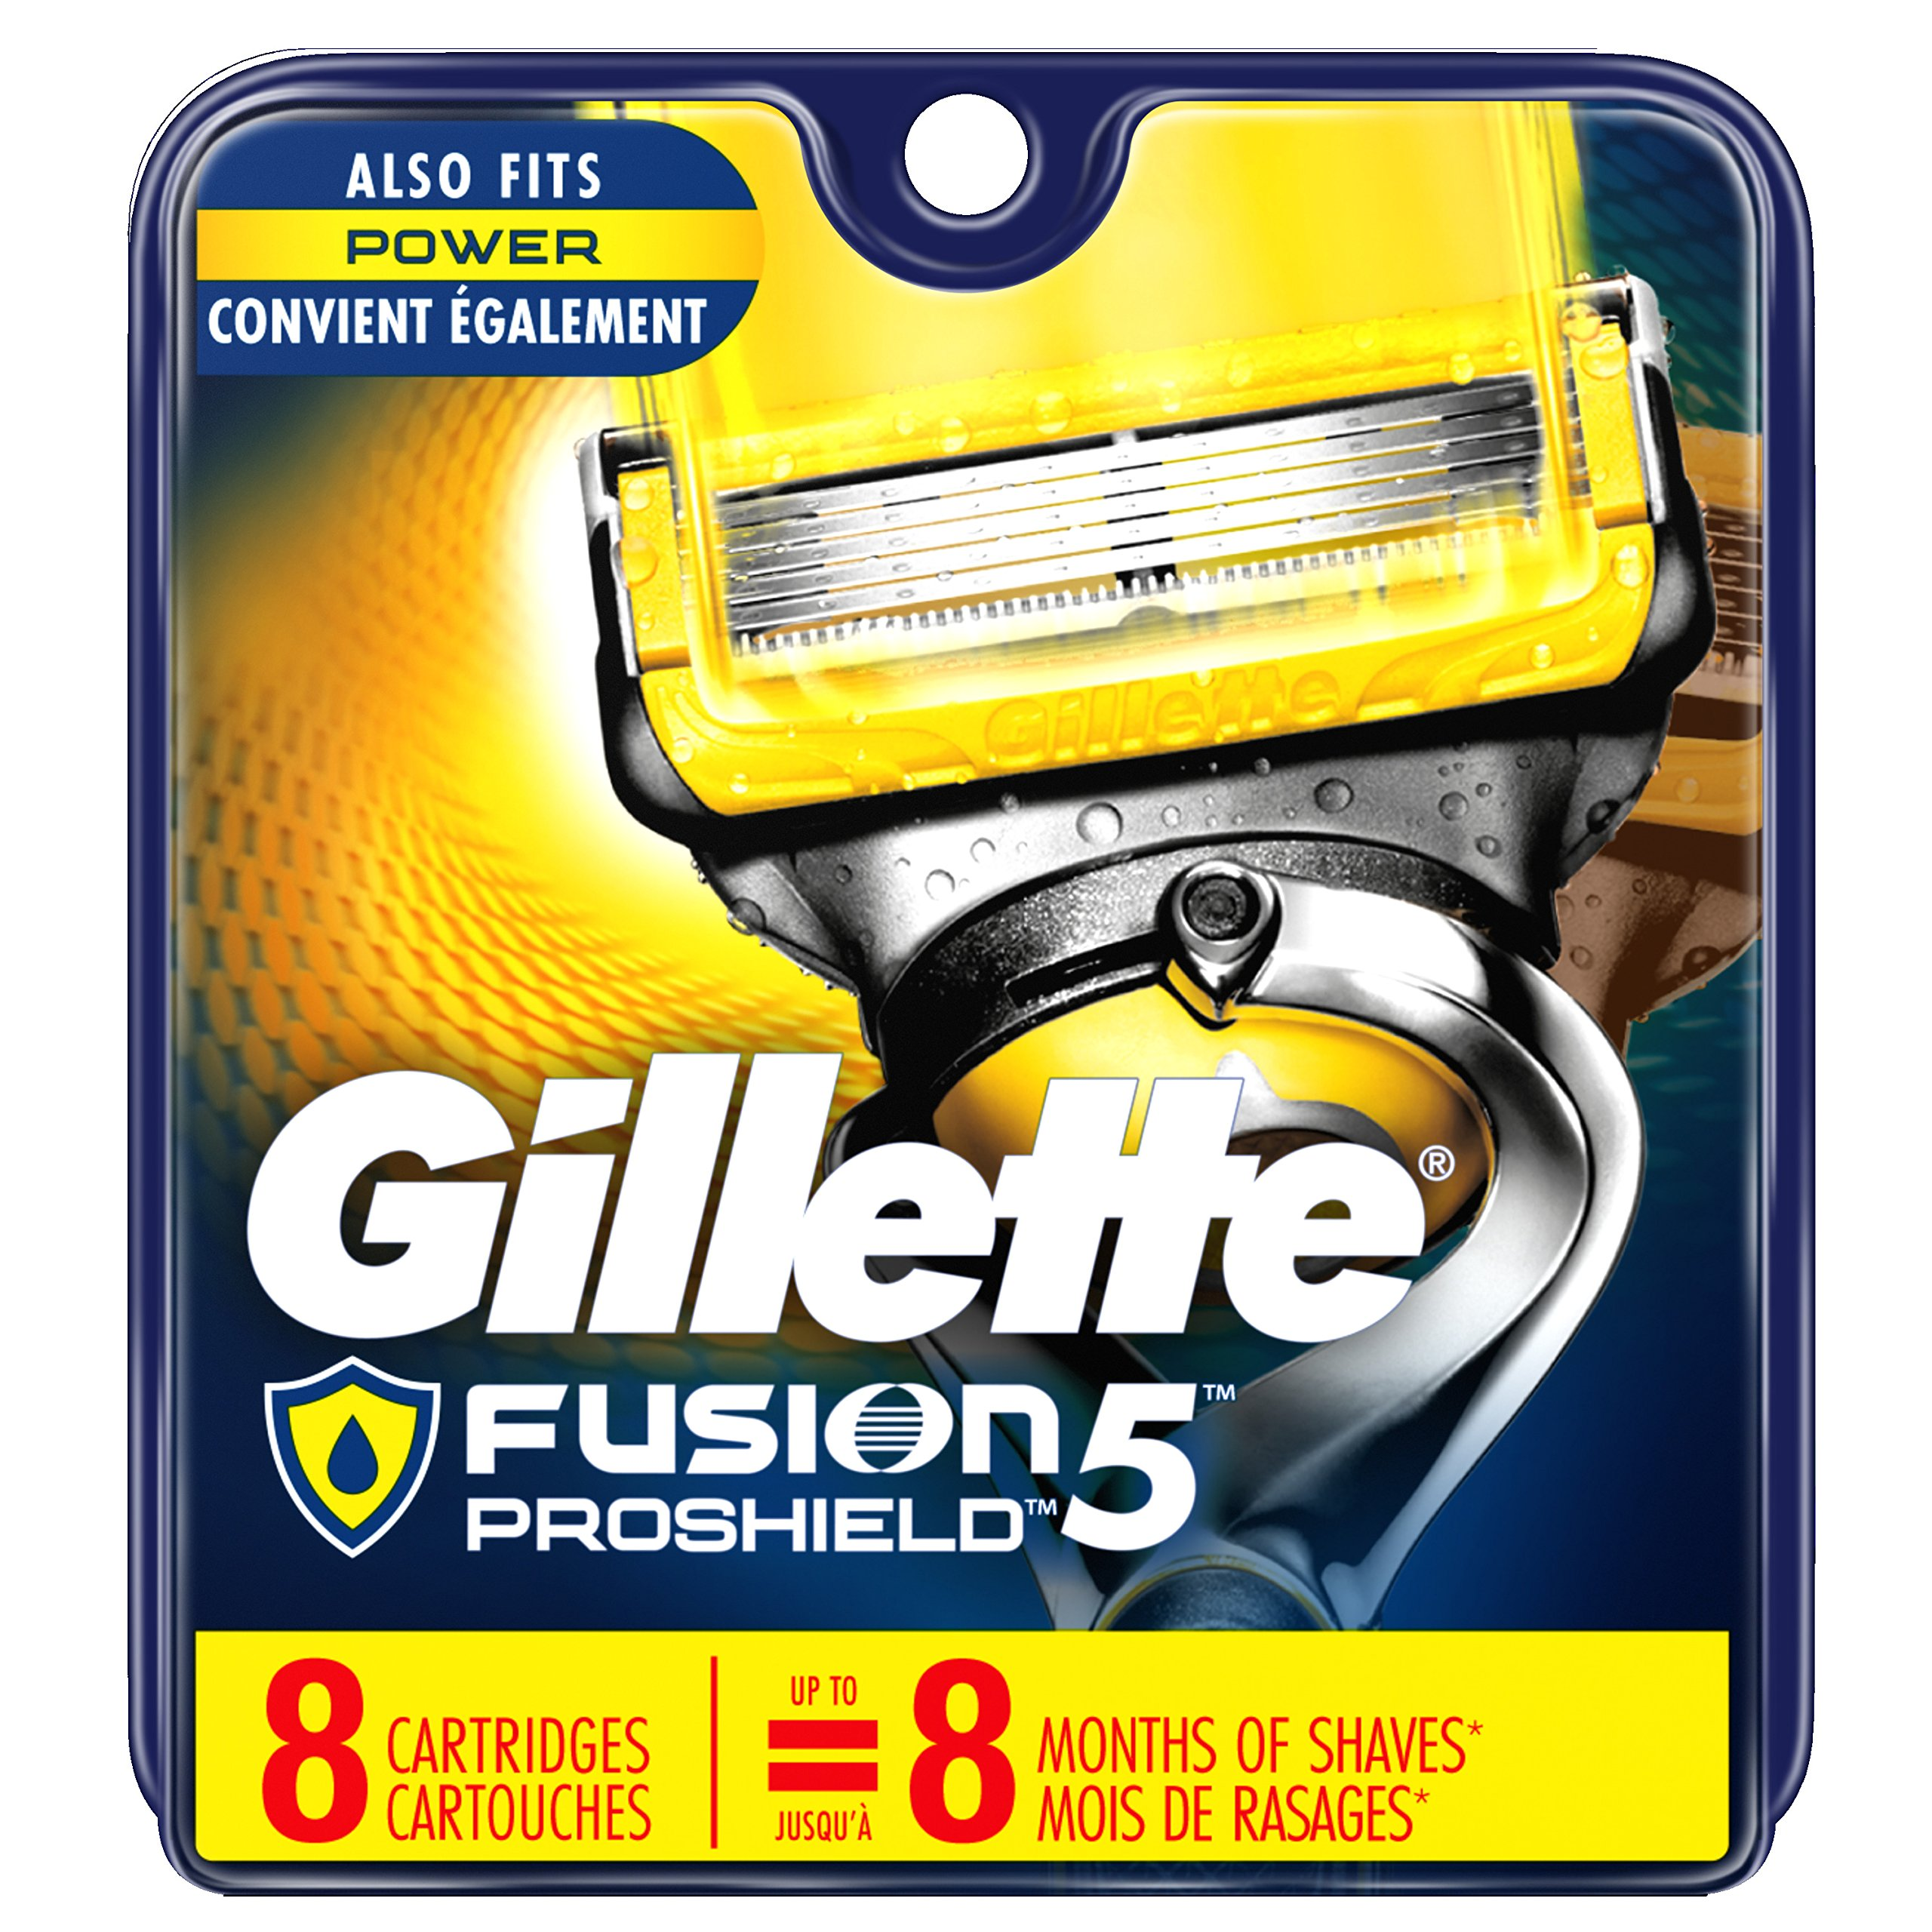 Gillette Fusion ProShield Men's Razor Blade Refills, 8 Count, Mens Razors / Blades (Packaging May Vary) by Gillette